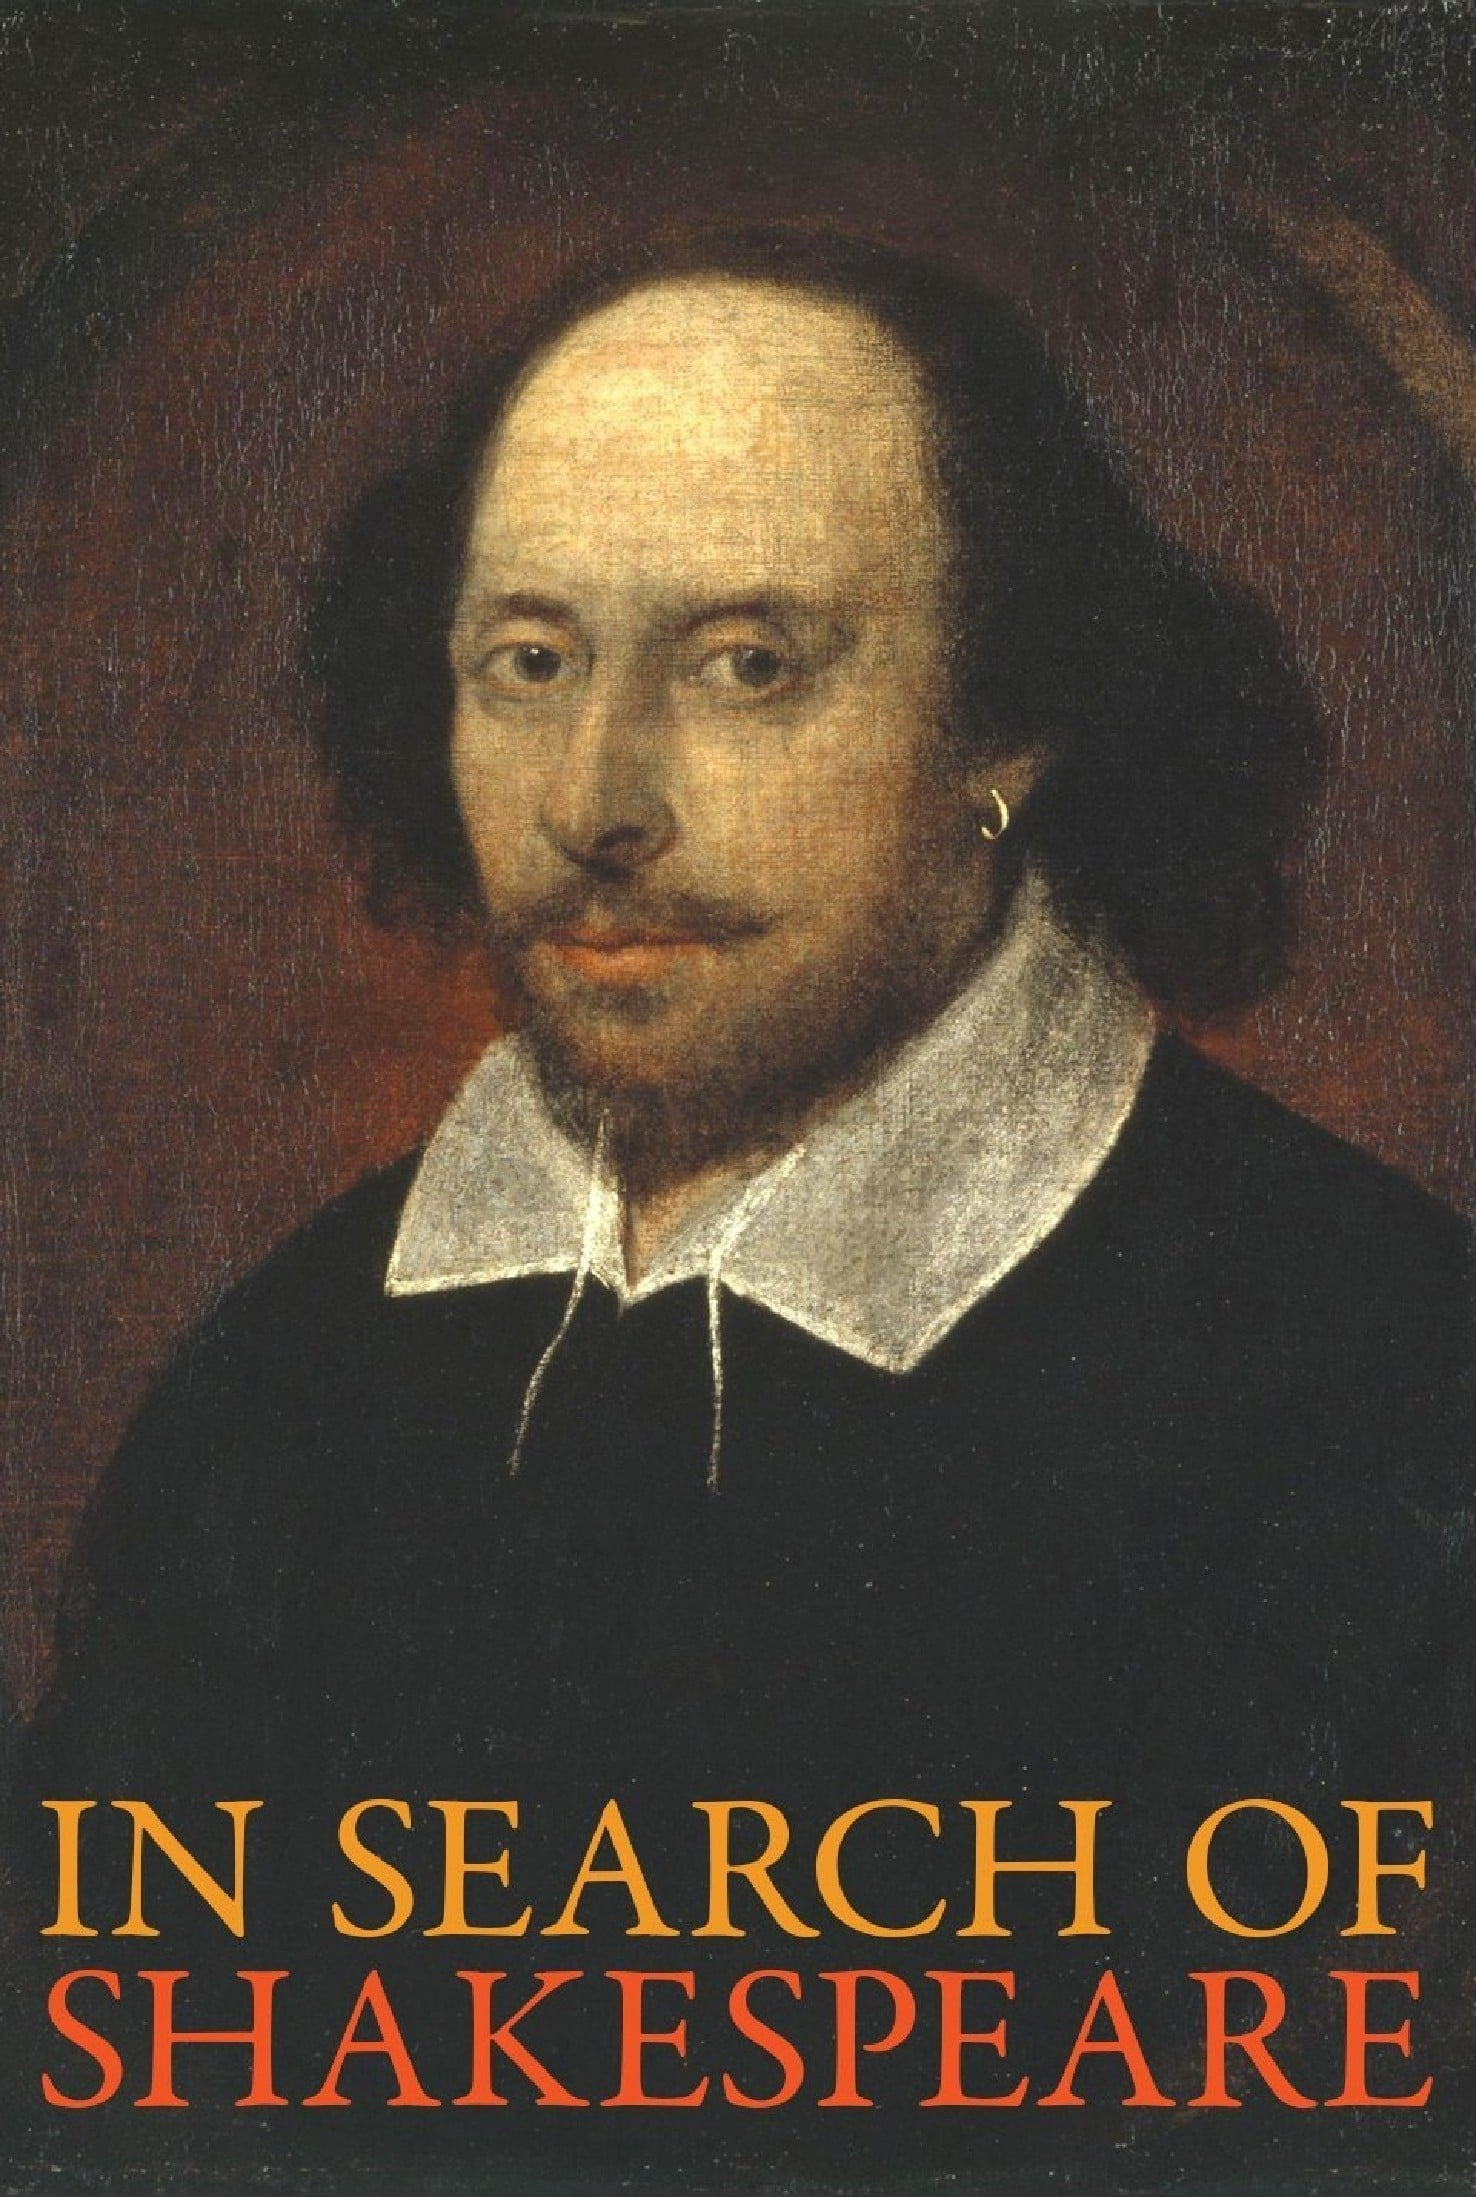 In Search of Shakespeare (2003)